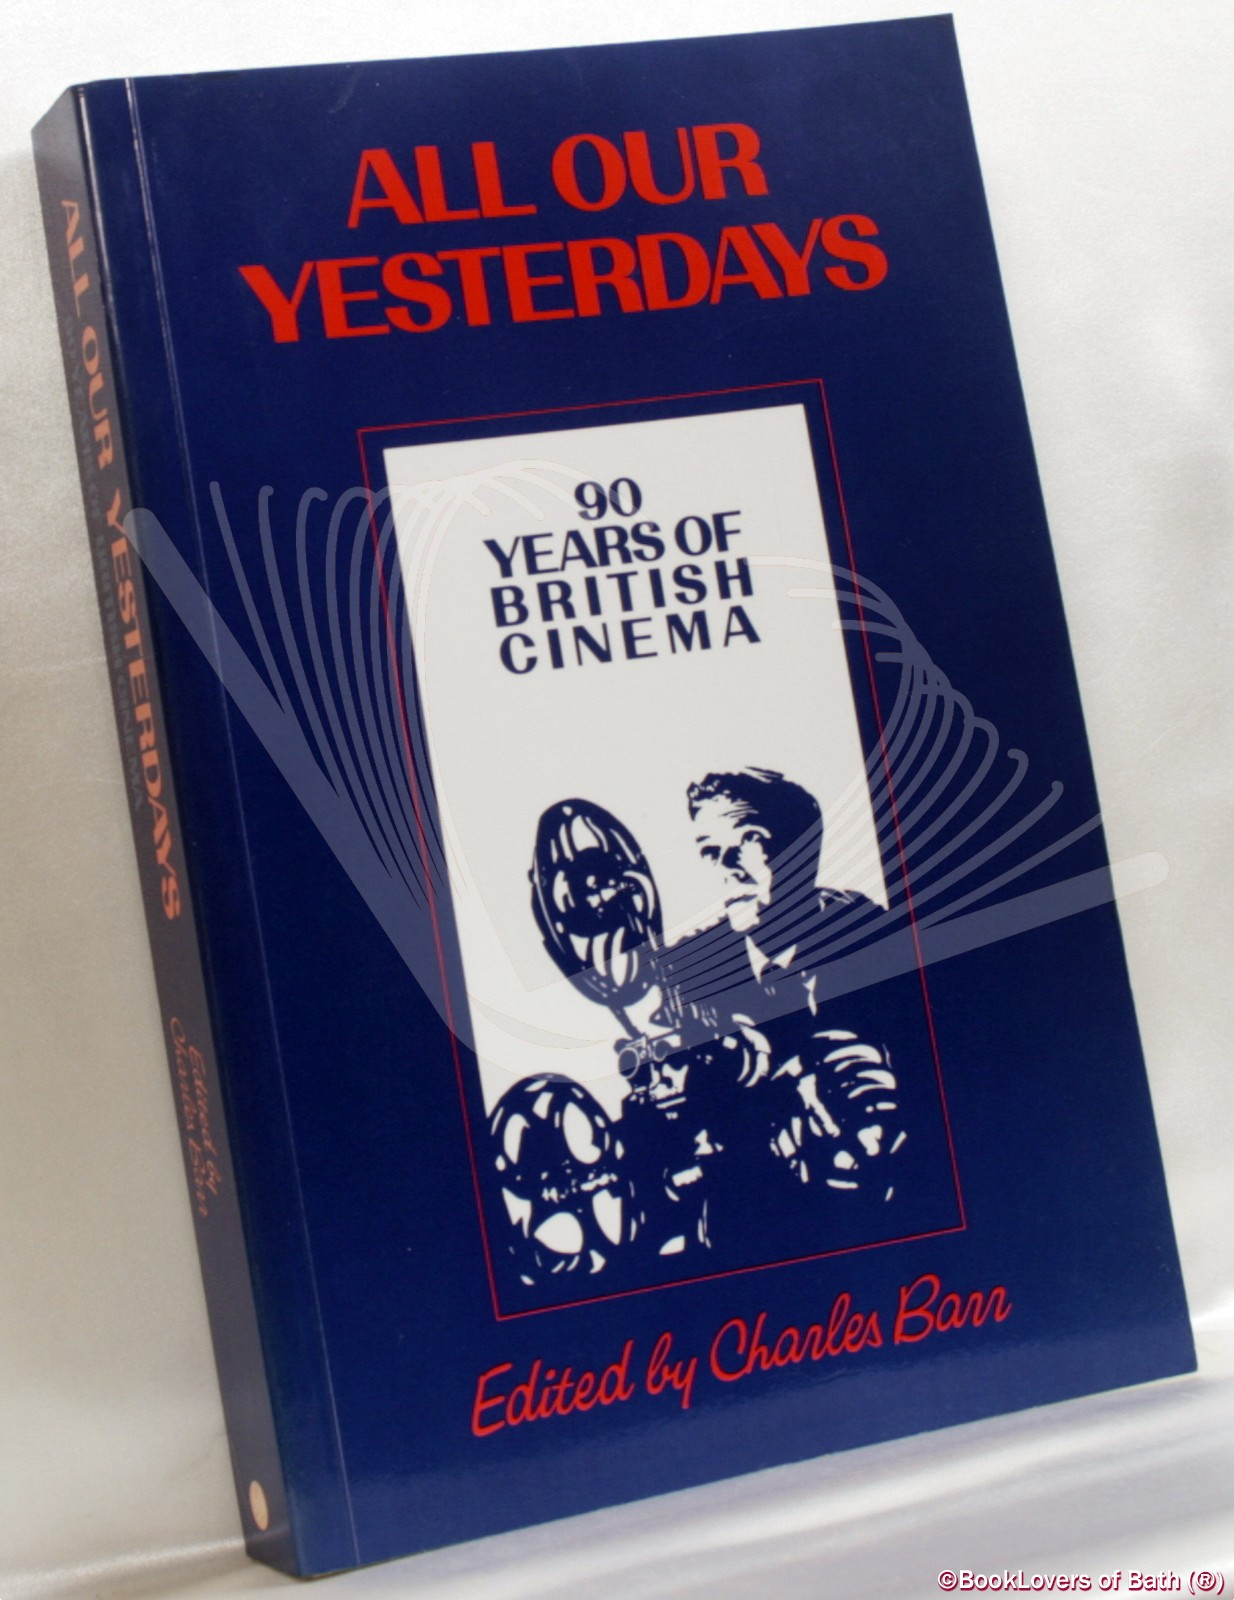 All Our Yesterdays: 90 Years of British Cinema  - Edited by Charles Barr